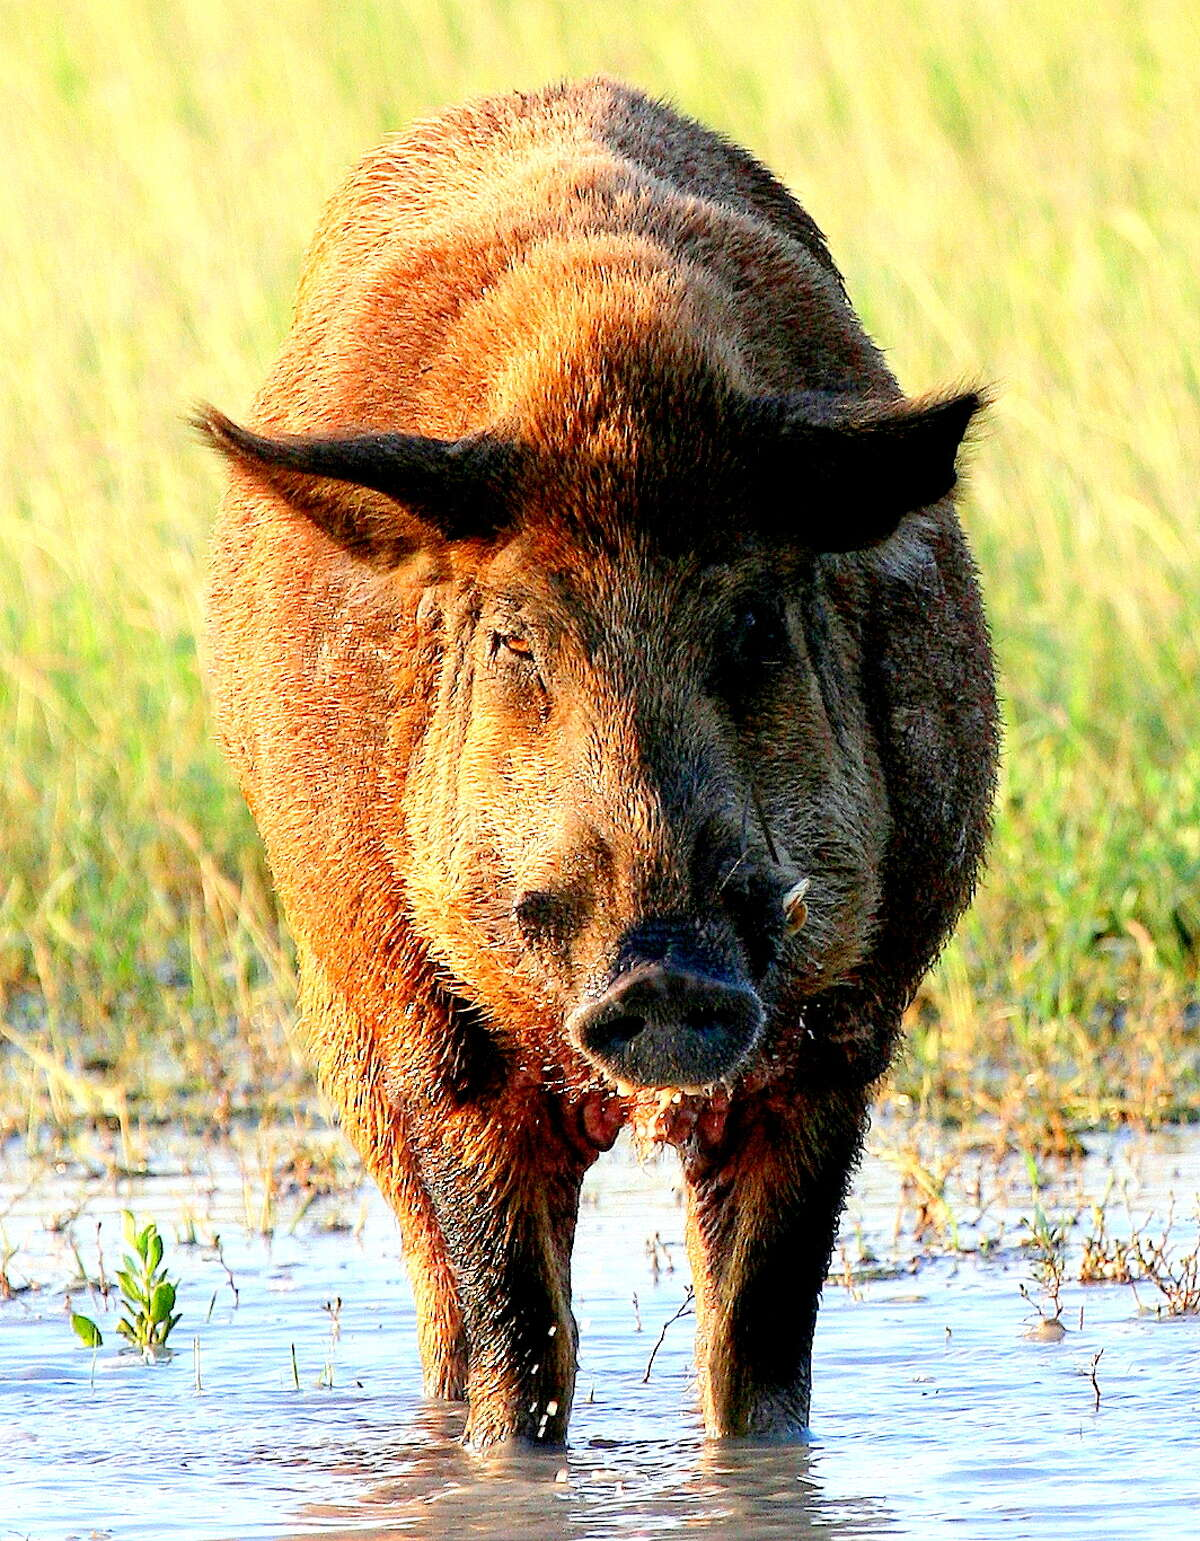 Tails must be harvested and brought to the Hays County AgriLife Extension office (220 Stillwater Drive). Source: Hays County Feral Hog Bounty Program